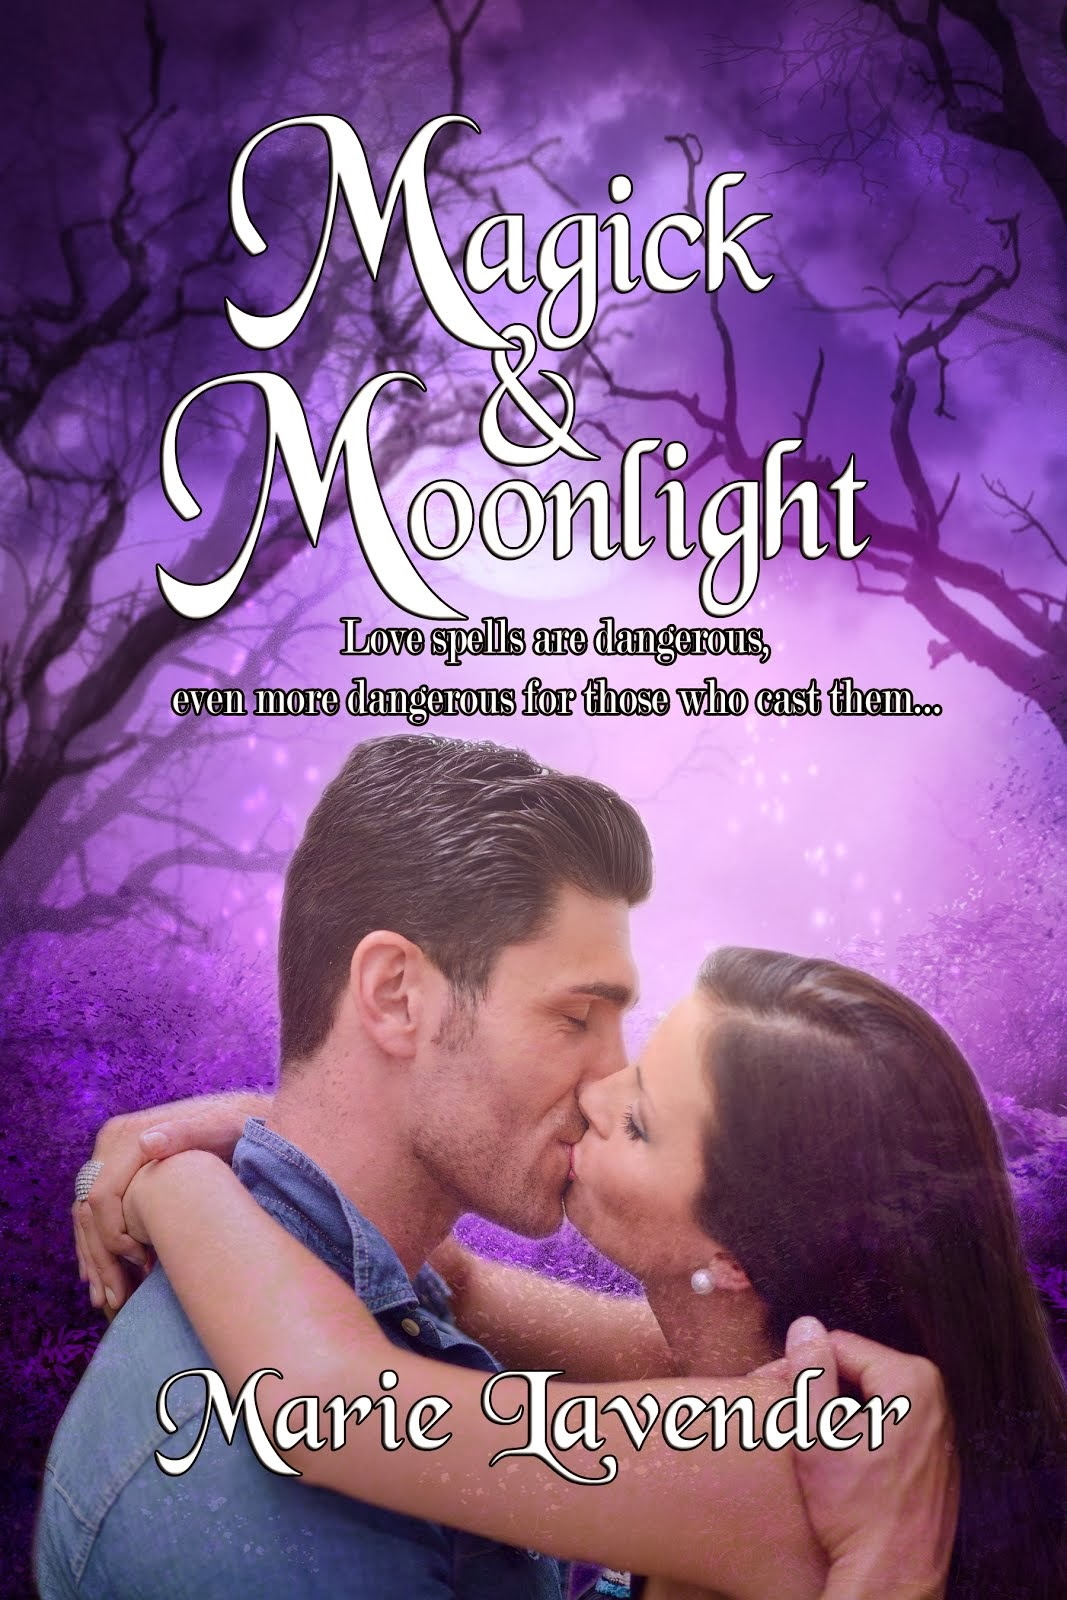 http://www.amazon.com/Magick-Moonlight-Marie-Lavender-ebook/dp/B00IRKN5P2/ref=asap_bc?ie=UTF8